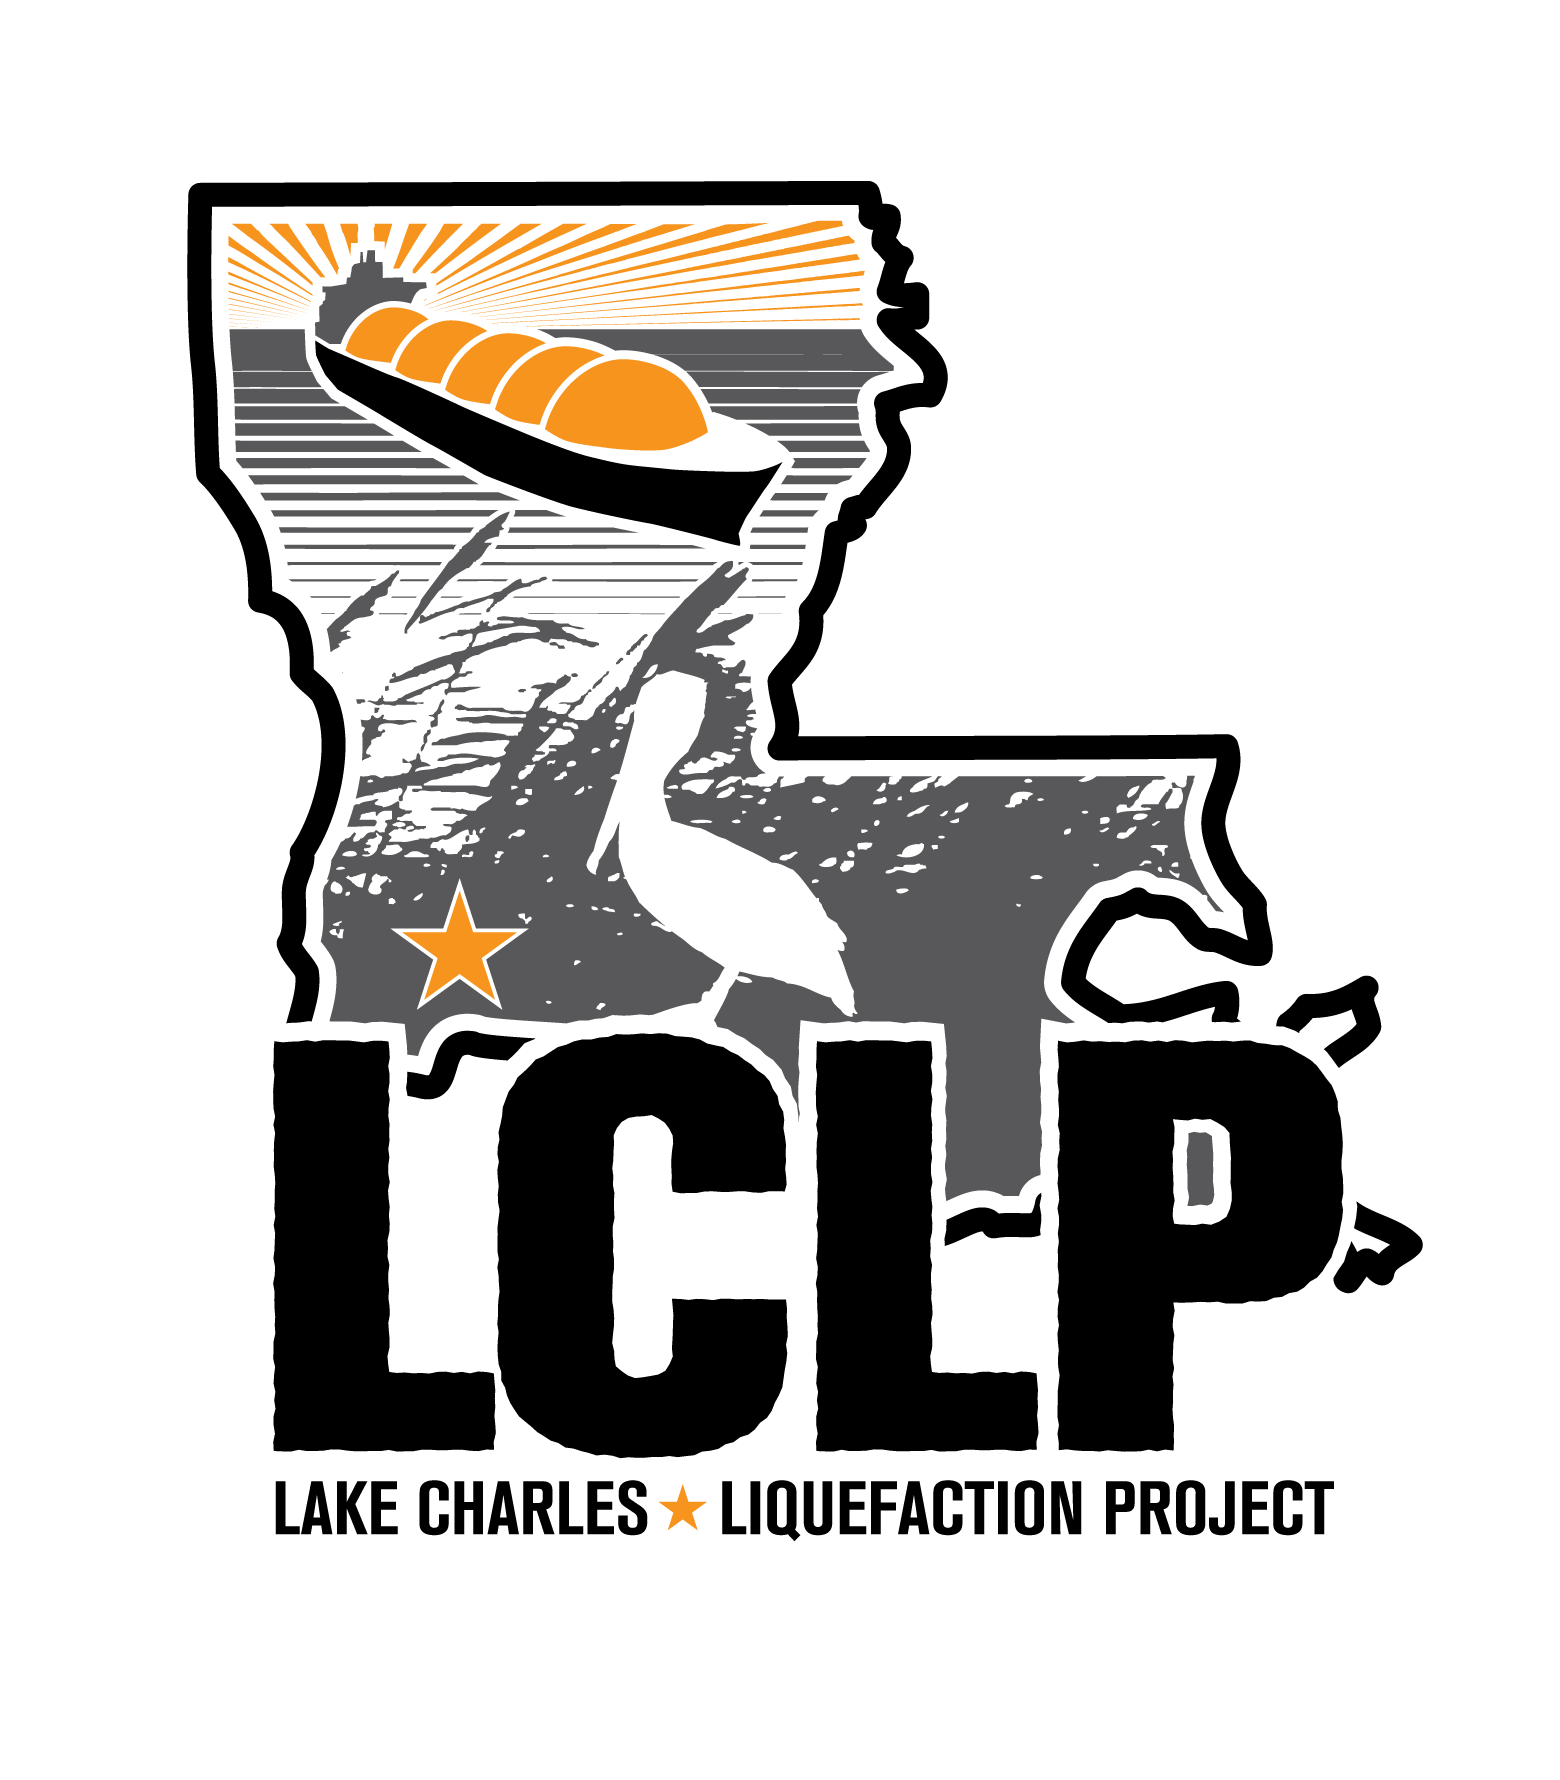 logo design: lake charles liquefaction project.